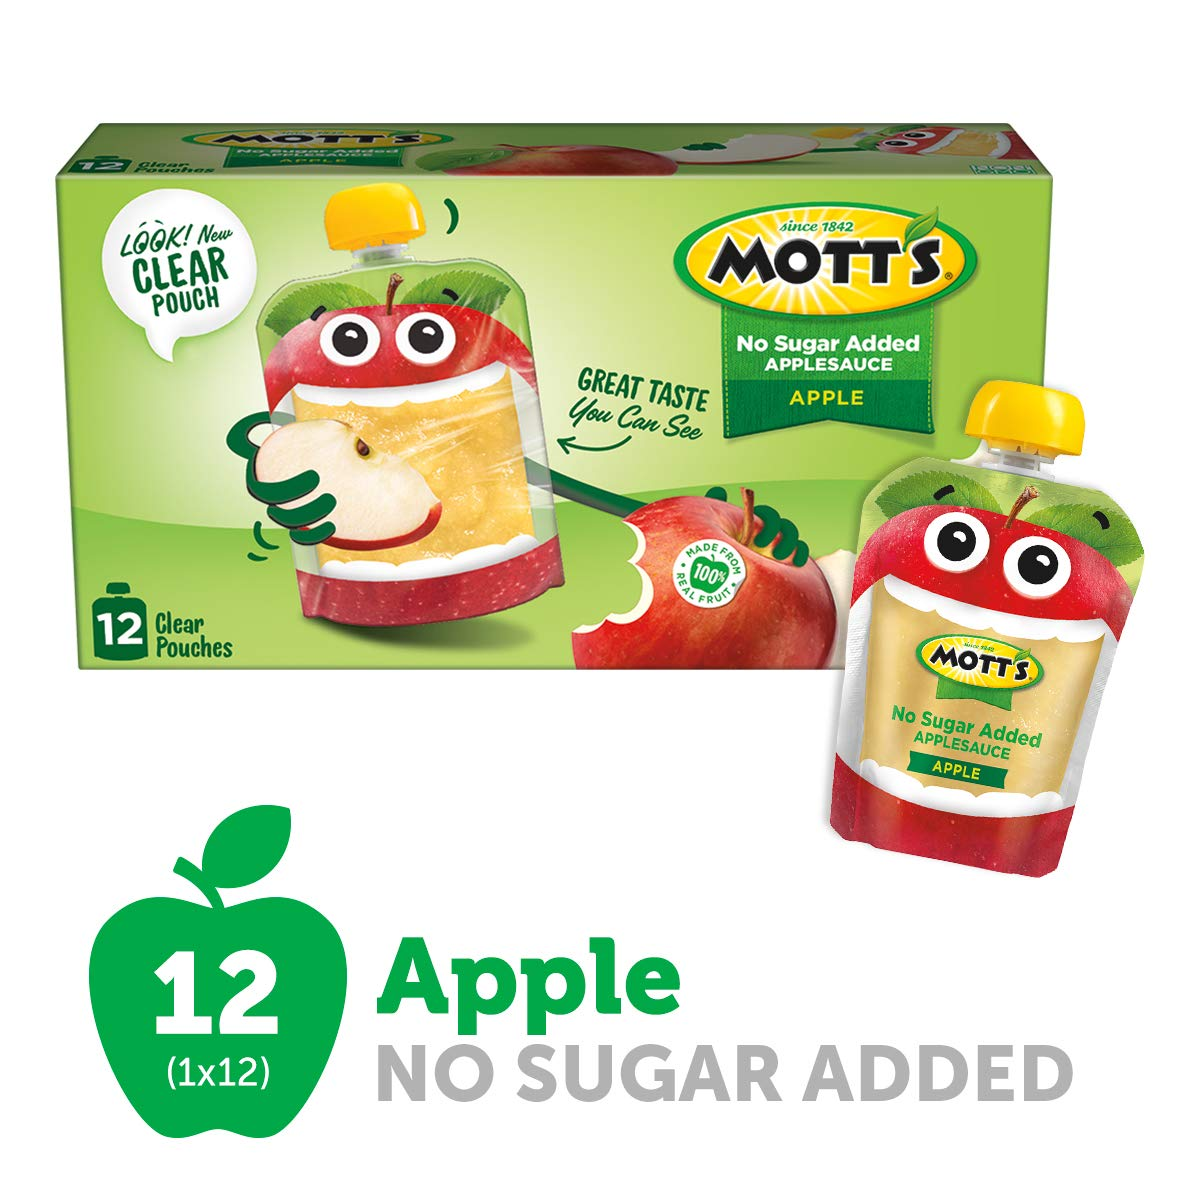 Mott's No Sugar Added Applesauce, 3.2 Ounce (Pack of 12) Clear Pouch, Perfect for on-the-go, No Added Sugars or Sweeteners, Gluten Free and Vegan